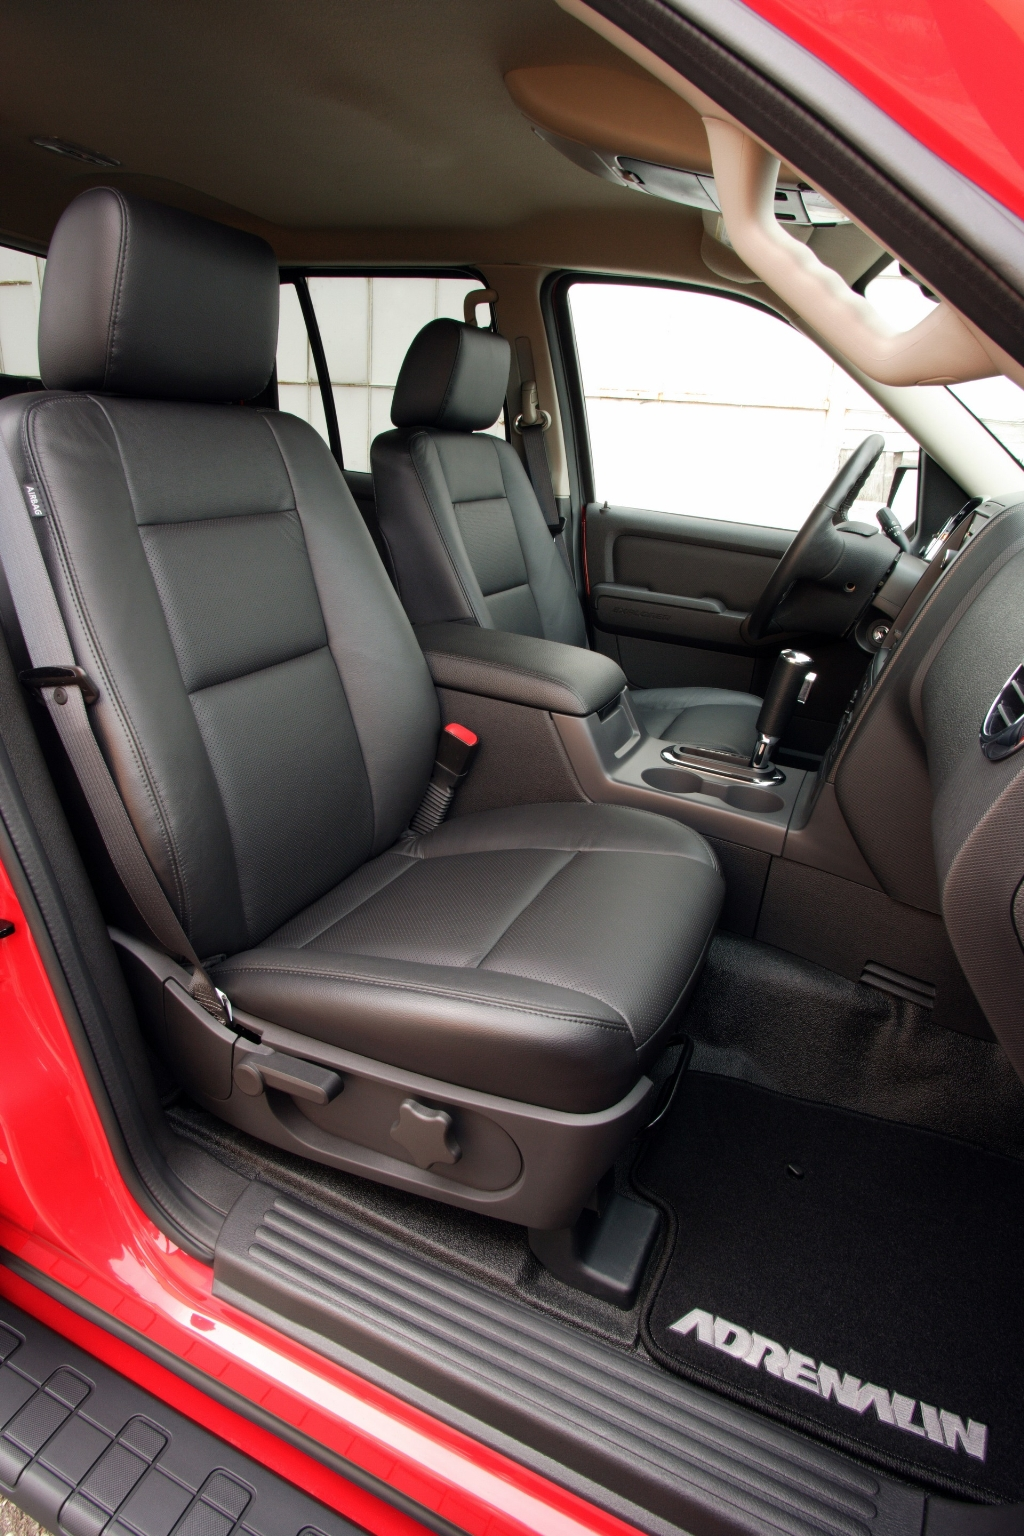 2008 Ford Explorer Sport Trac Adrenalin Image